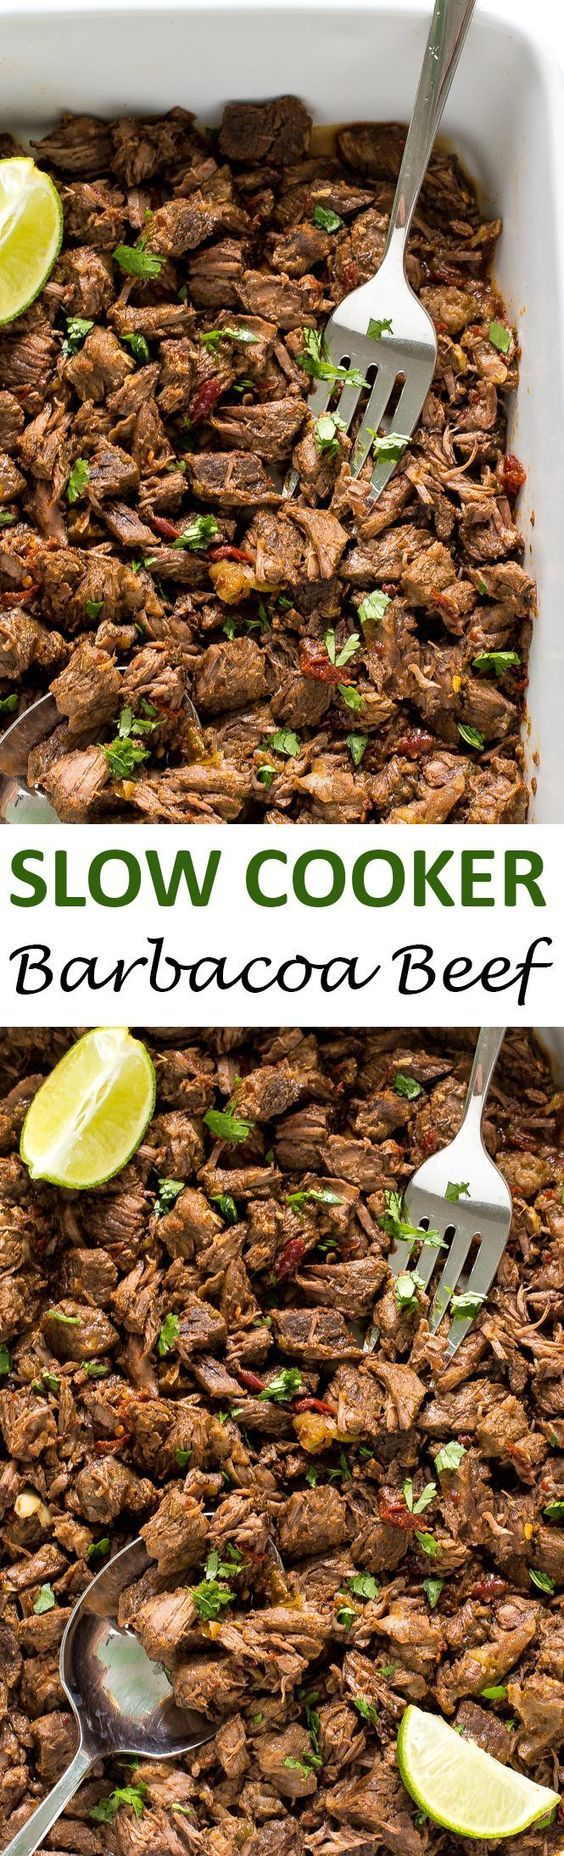 Melt in your mouth Slow Cooker Barbacoa Beef. Cooked low and slow for 8 hours! Perfect for tacos, burritos and quesadillas!